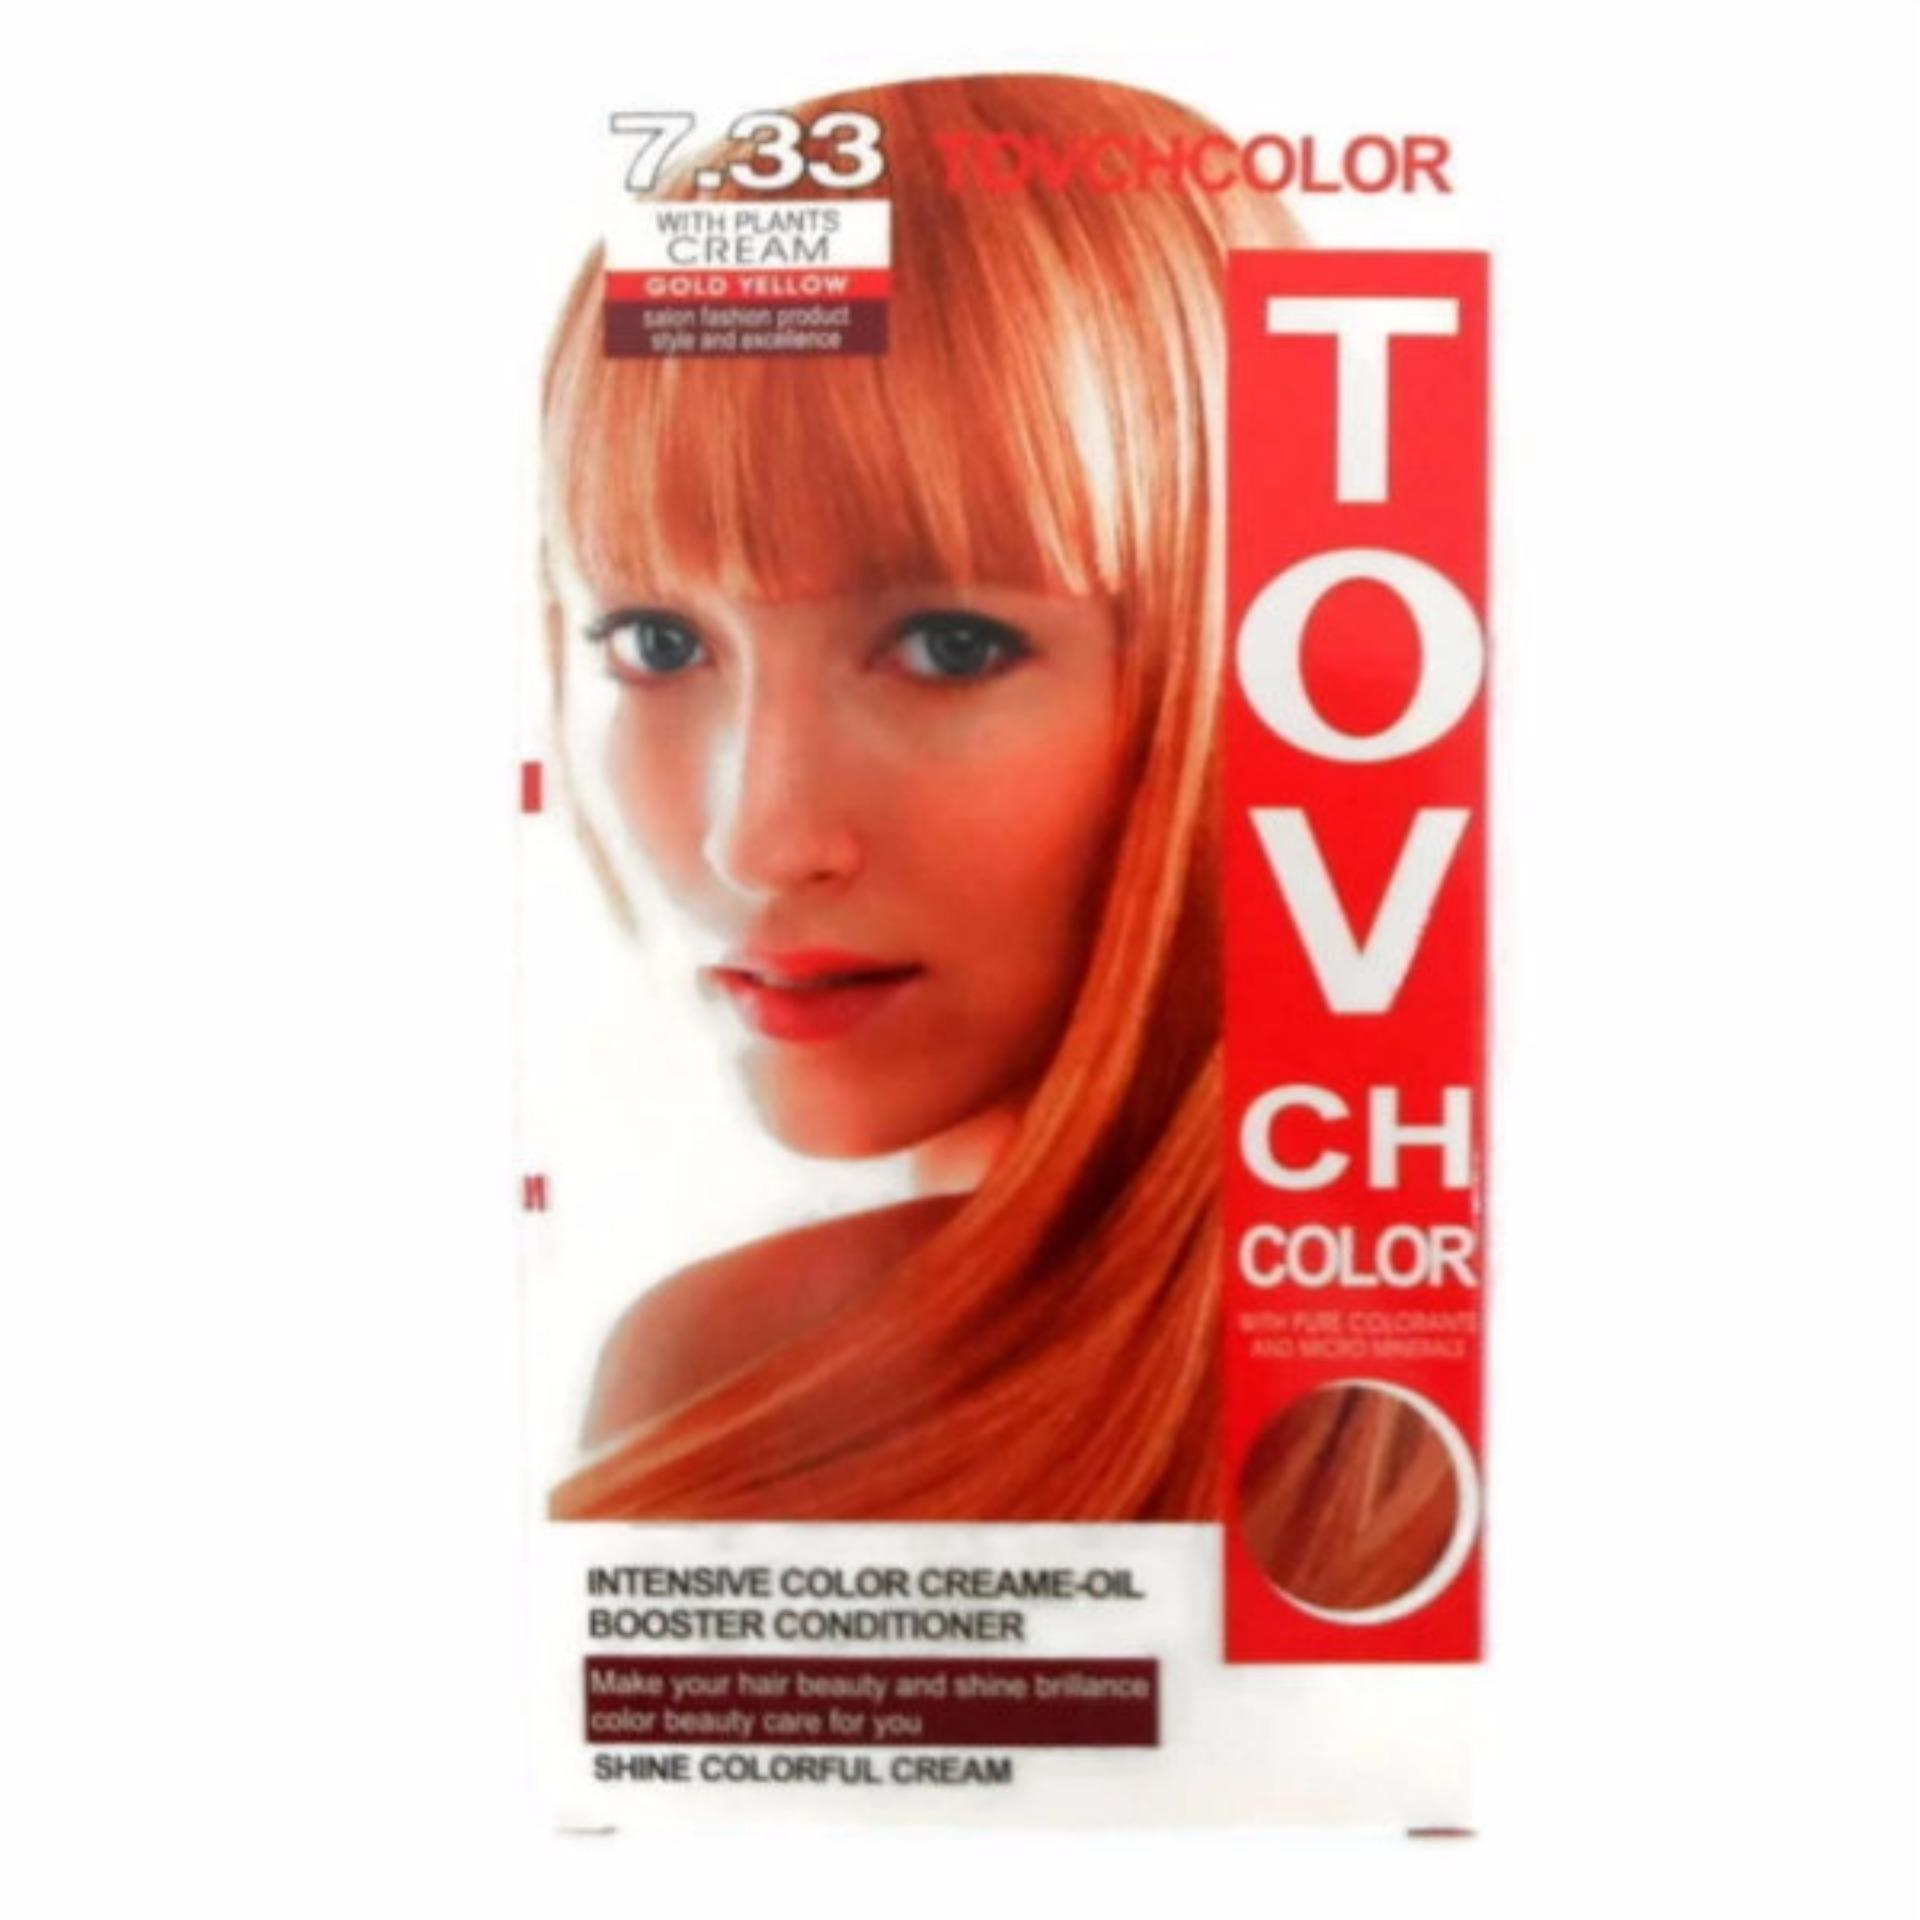 Philippines Tov Hair Color No 733 Gold Yellow Buy 1 Take 1 357g